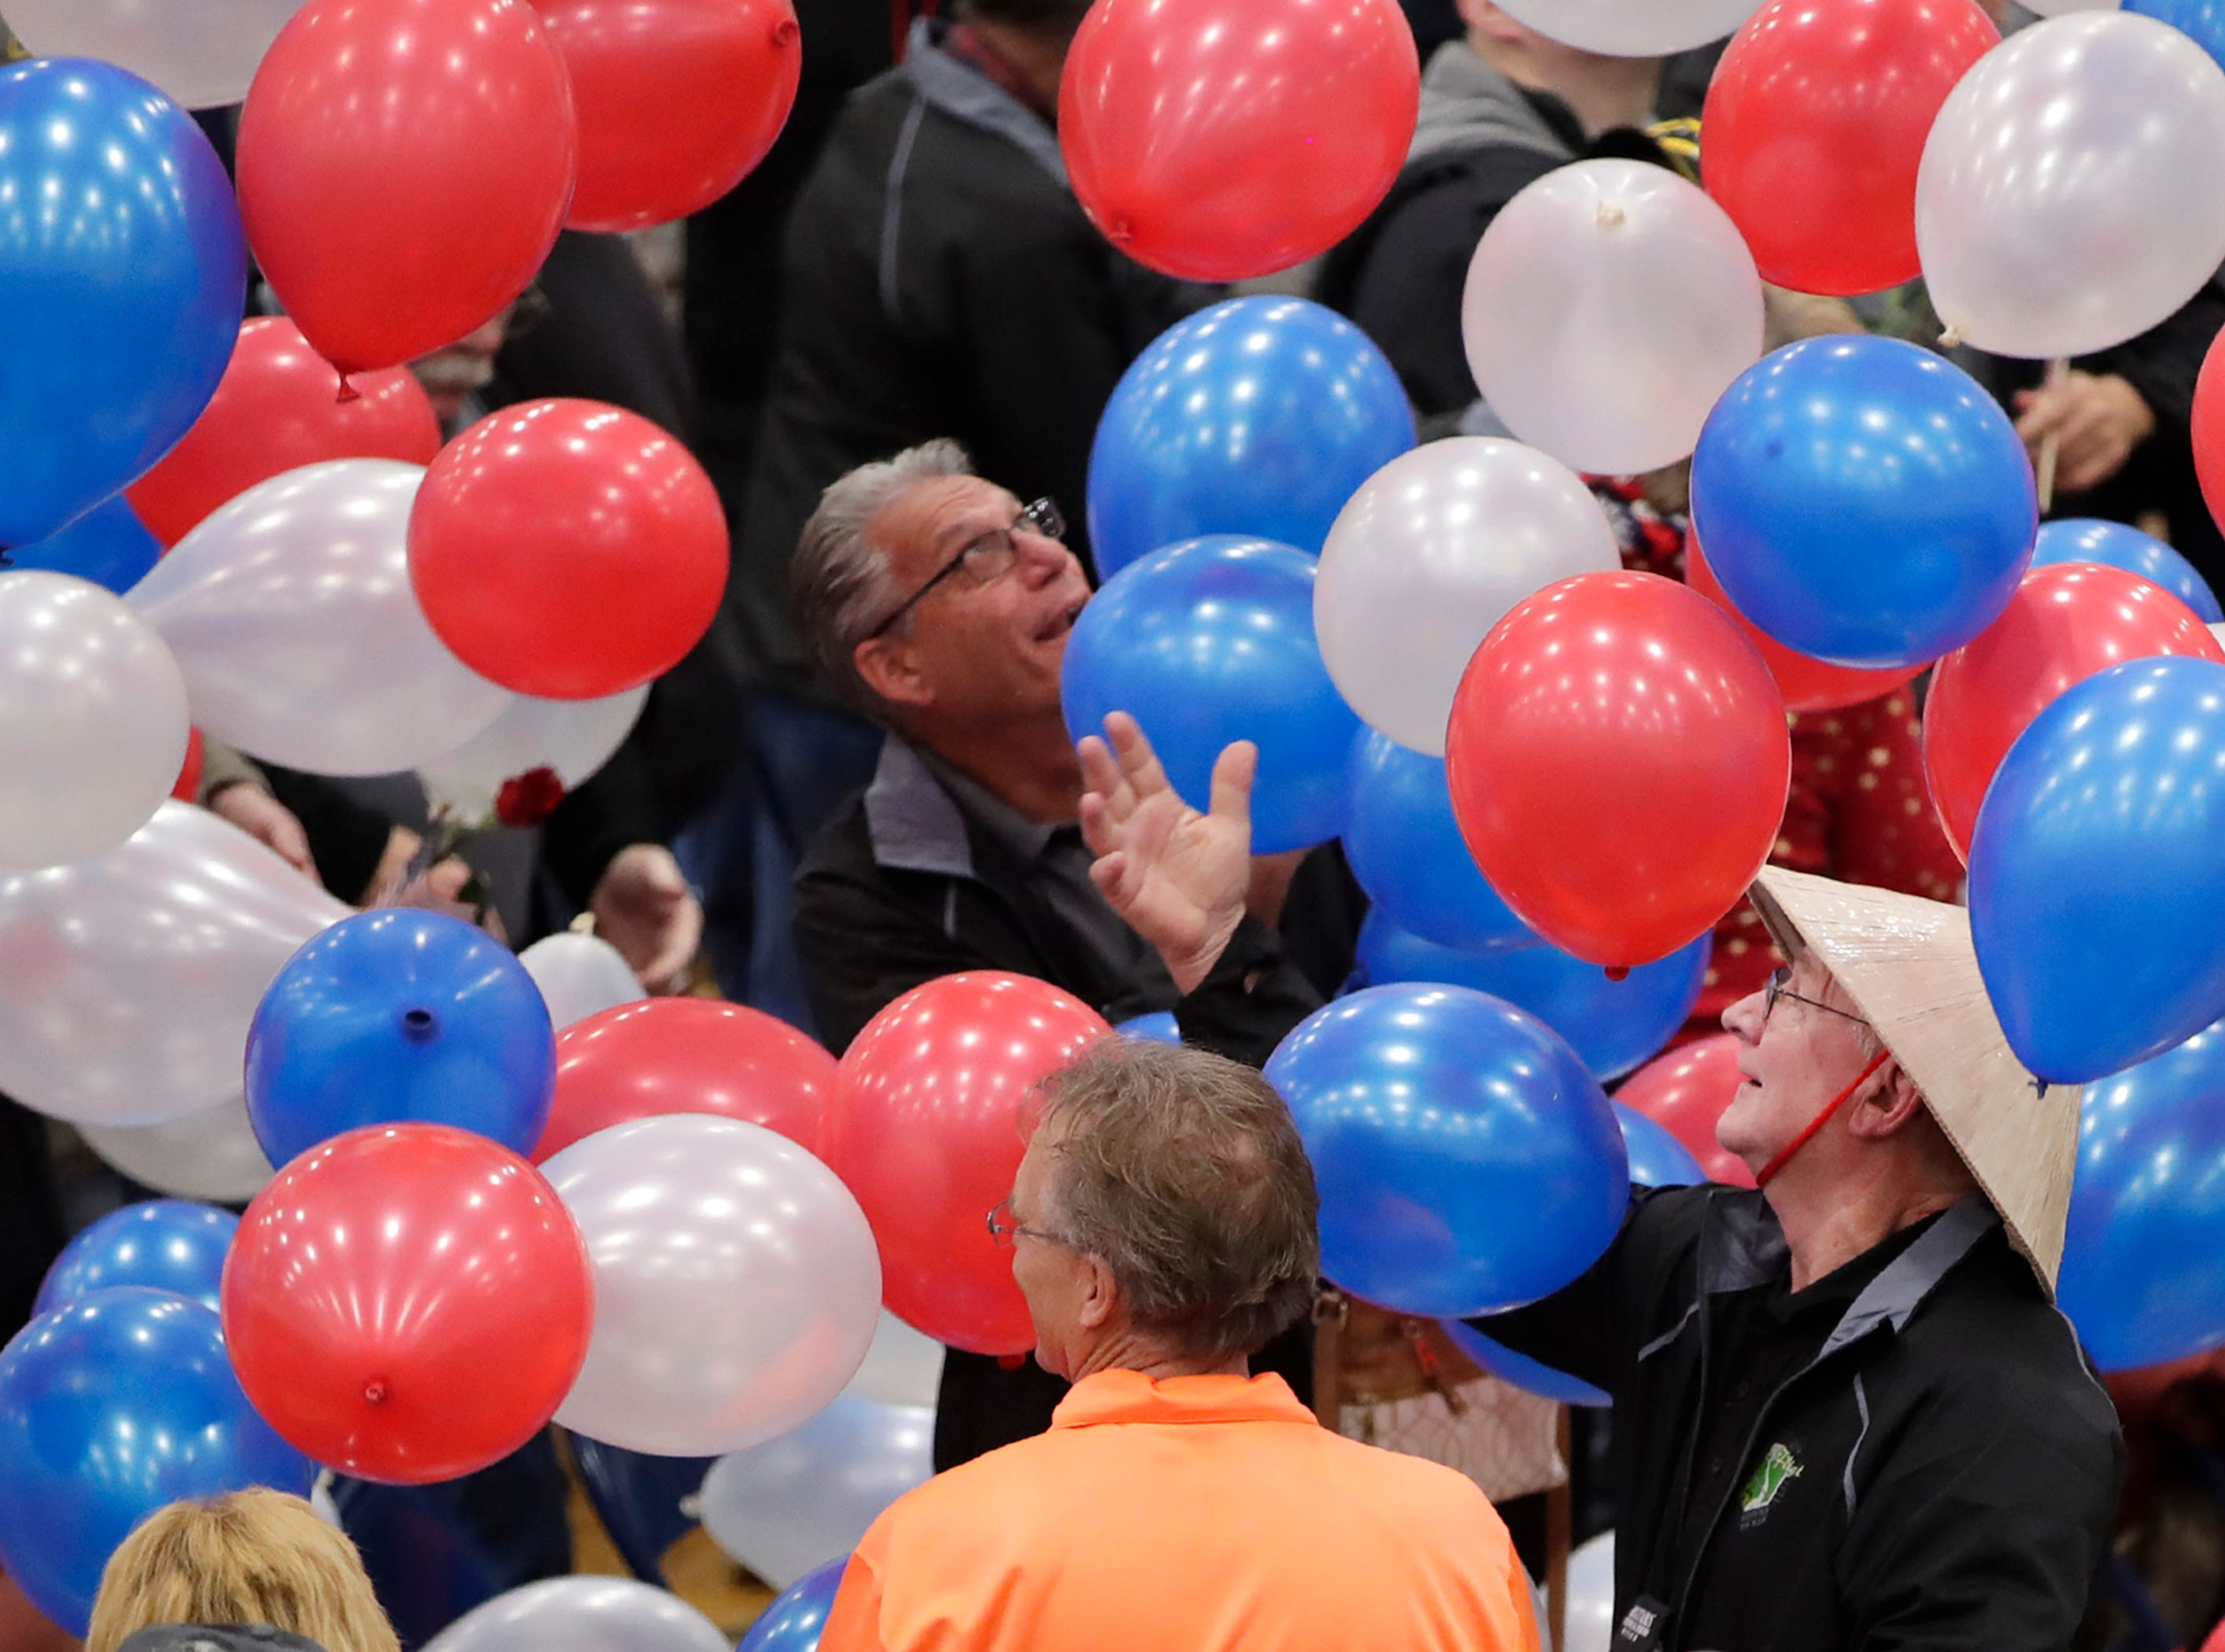 Dennis Helke, of Manitowac, reaches for falling balloons at the end of the welcome home ceremony during the Old Glory Honor Flight-Return to Nam welcome home Saturday, March 9, 2019, at Menasha High School in Menasha, Wis. Veterans were greeted by friends, family, the Menasha High School band, and the 484th Army Band.Danny Damiani/USA TODAY NETWORK-Wisconsin